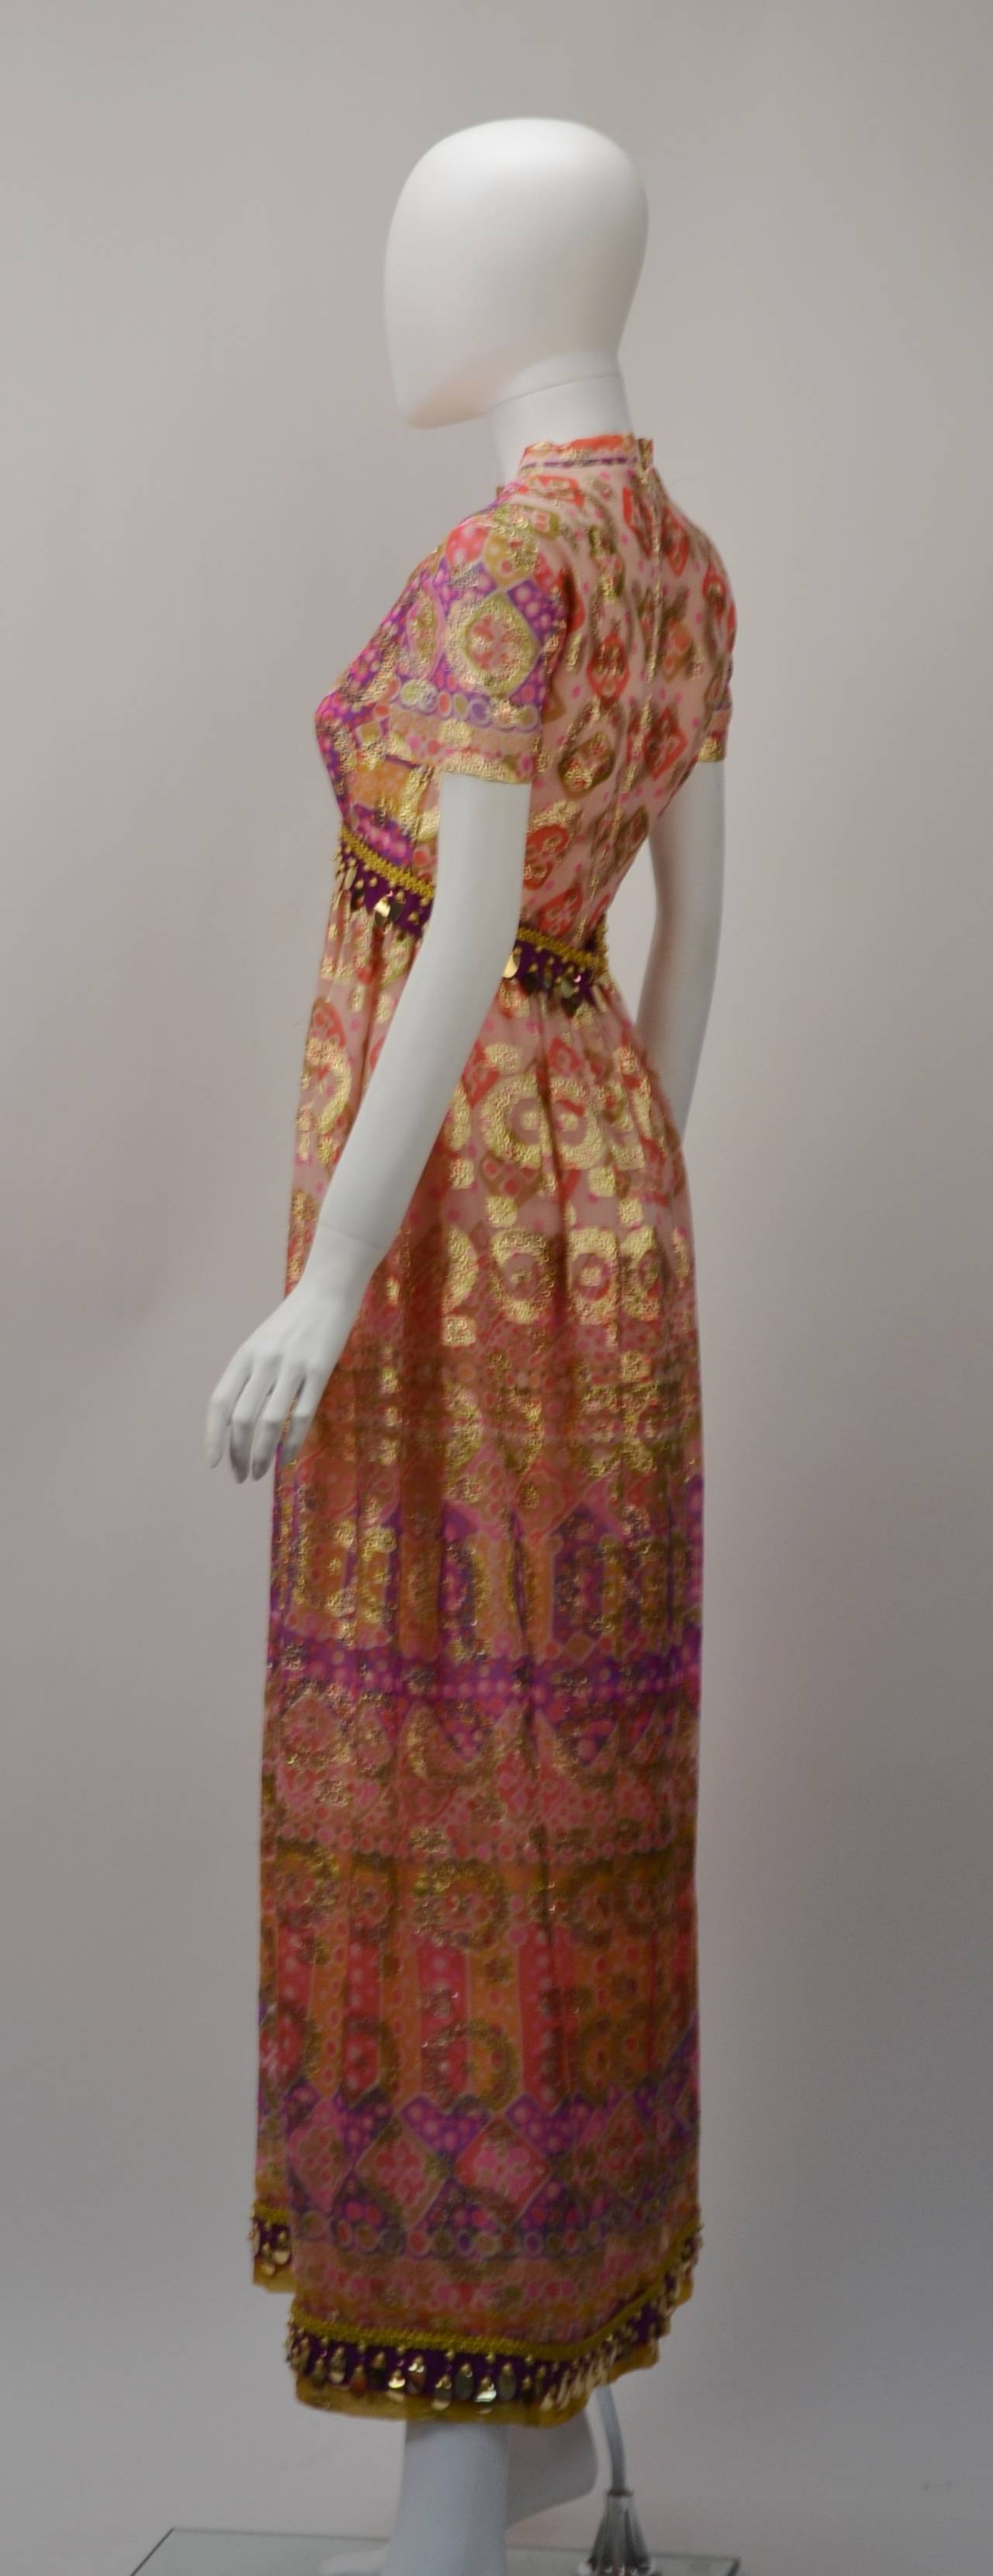 Brown Gino Charles Gold Print Dress, 1970s  For Sale